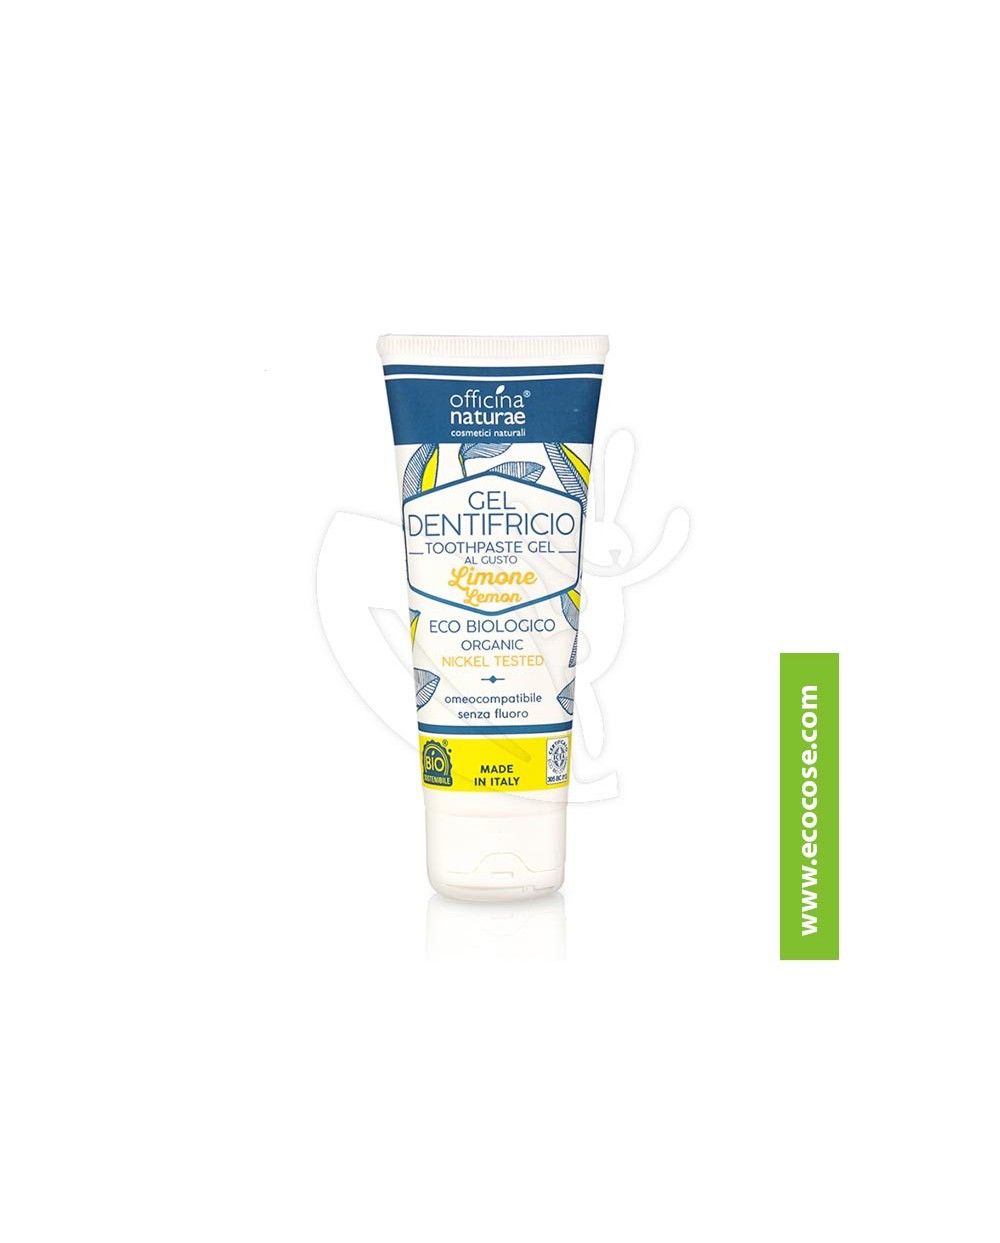 Officina Naturae - Gel dentifricio naturale LIMONE